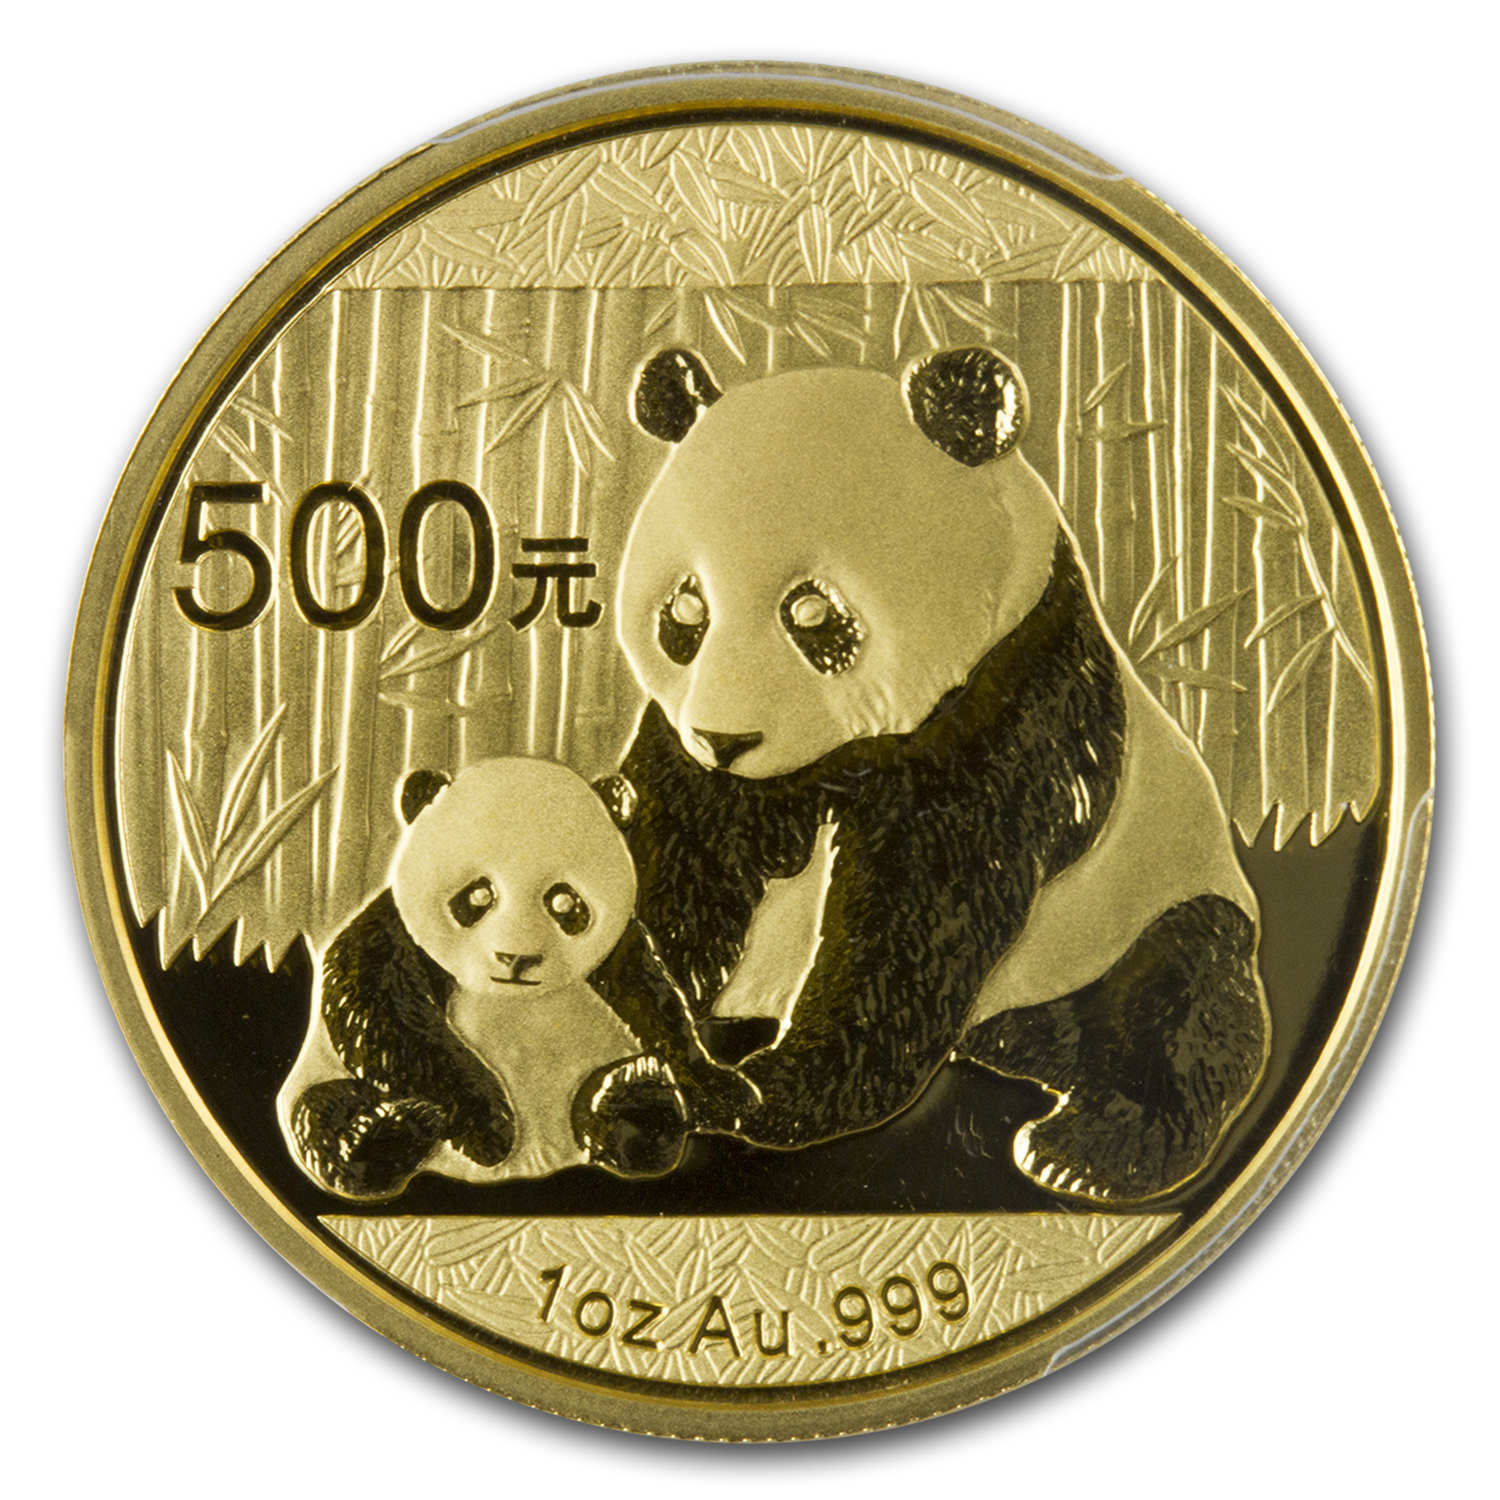 2012 China 1 oz Gold Panda MS-68 PCGS